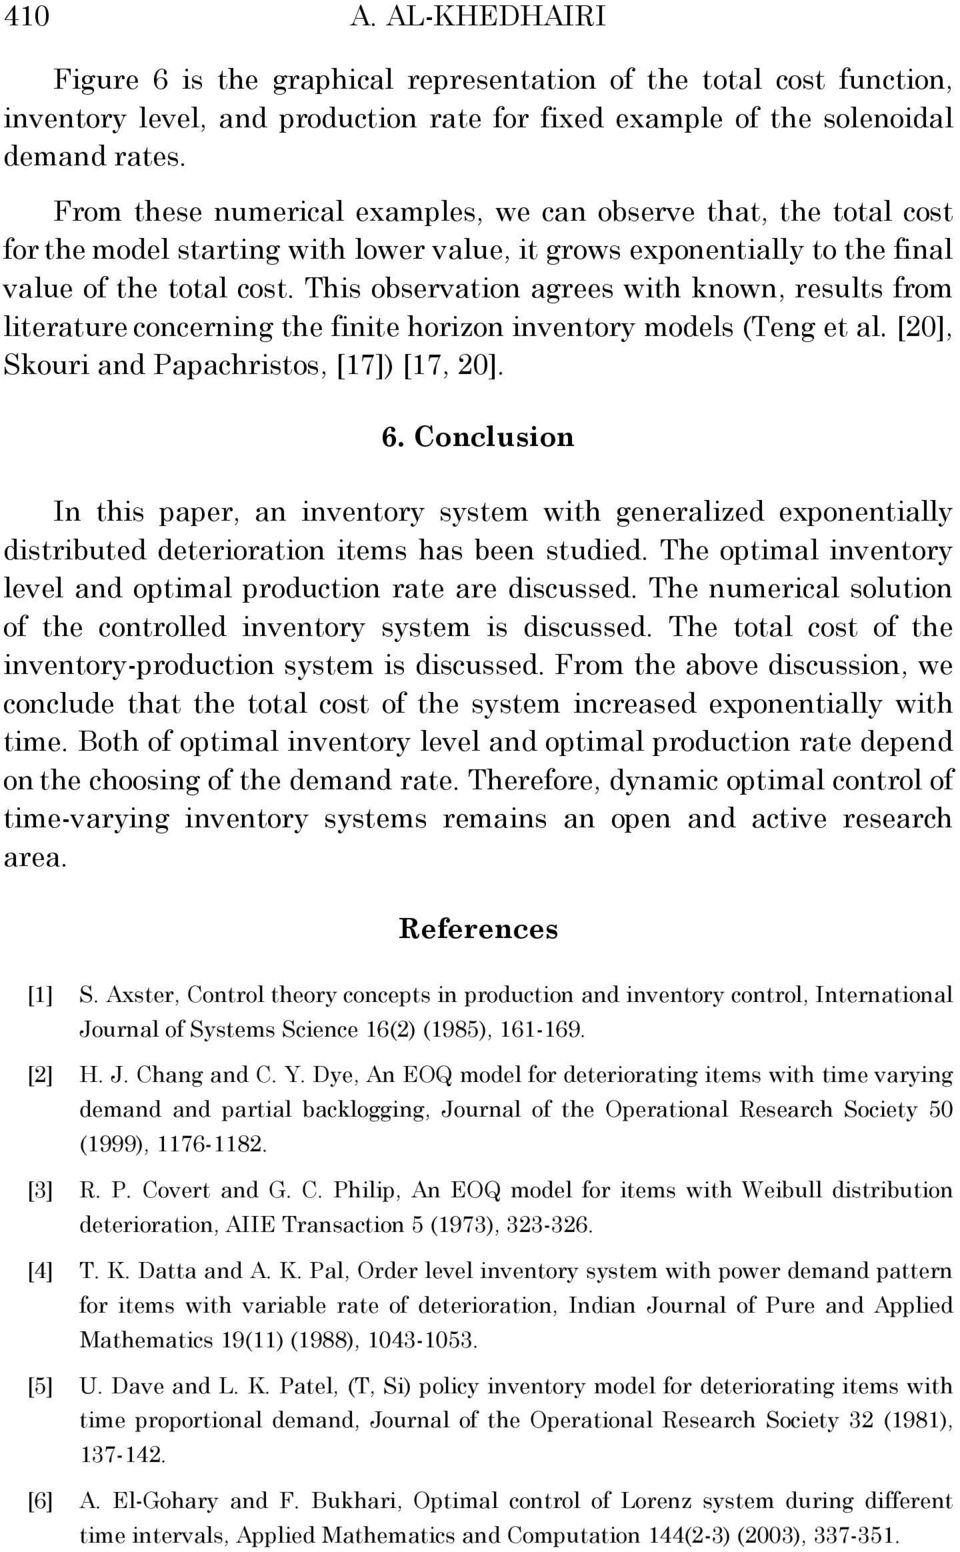 OPTIMAL CONTROL OF A PRODUCTION INVENTORY SYSTEM WITH